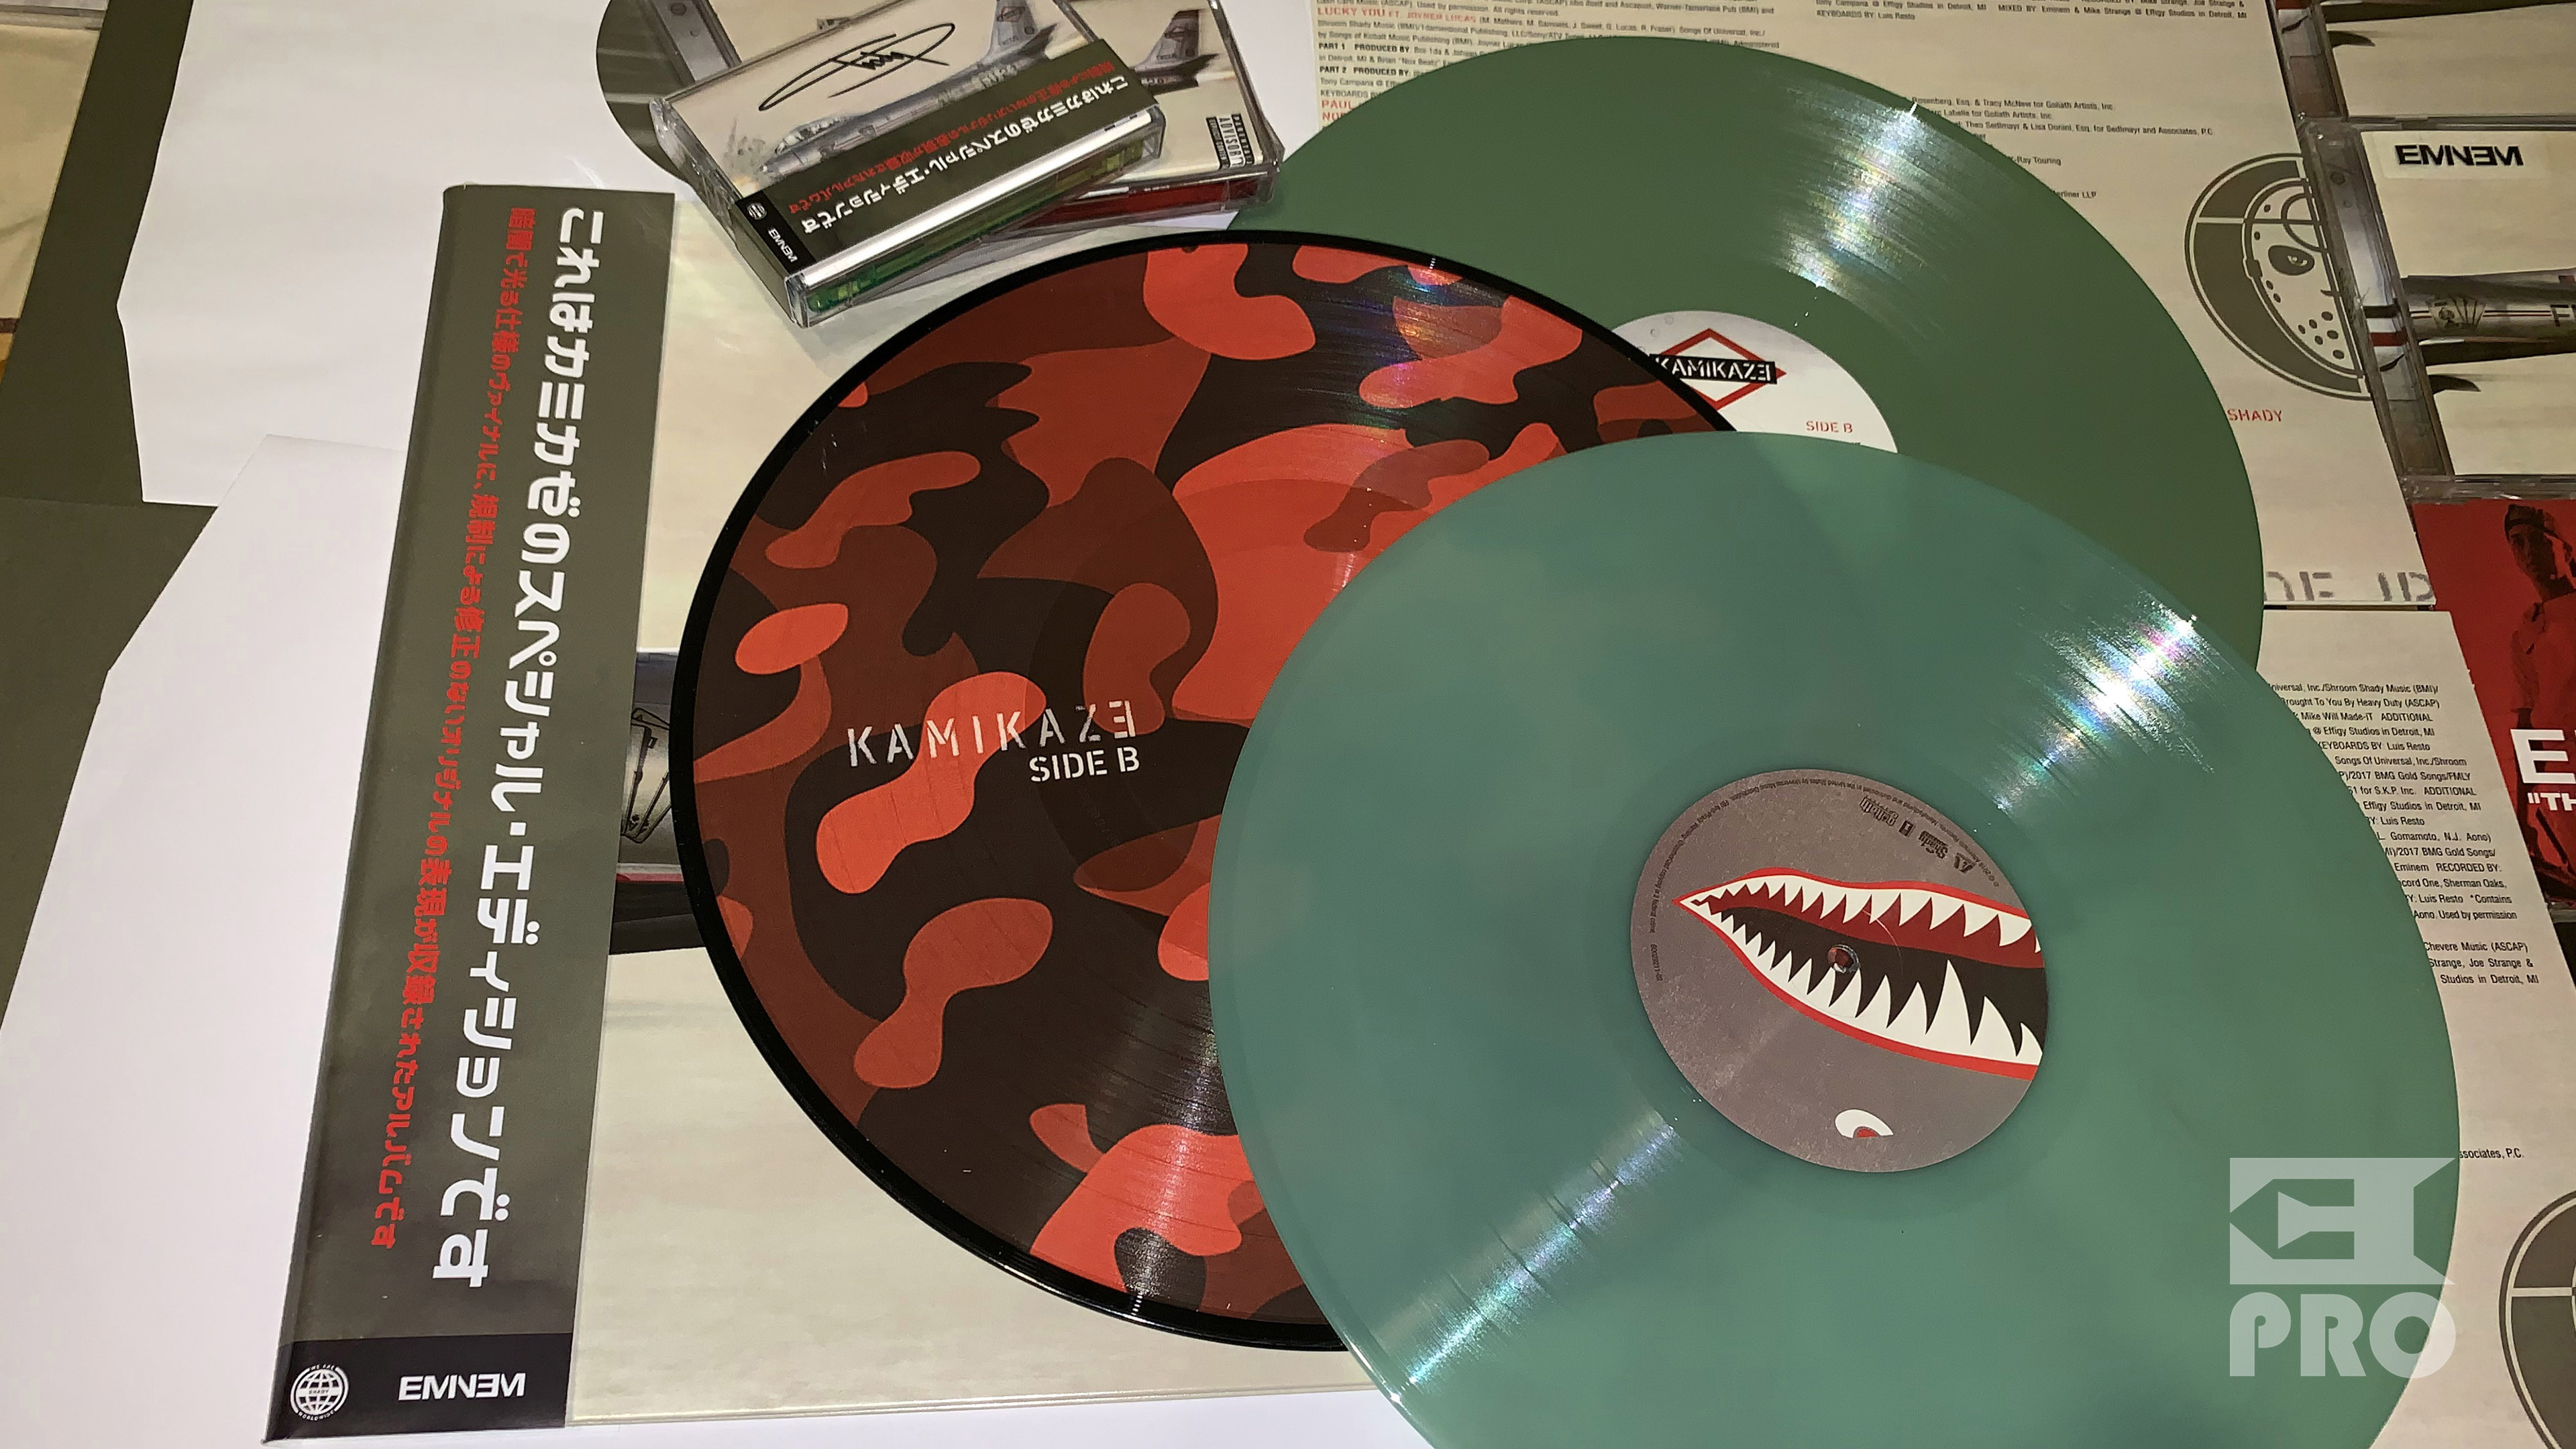 Review of all vinyl editions of Kamikaze album